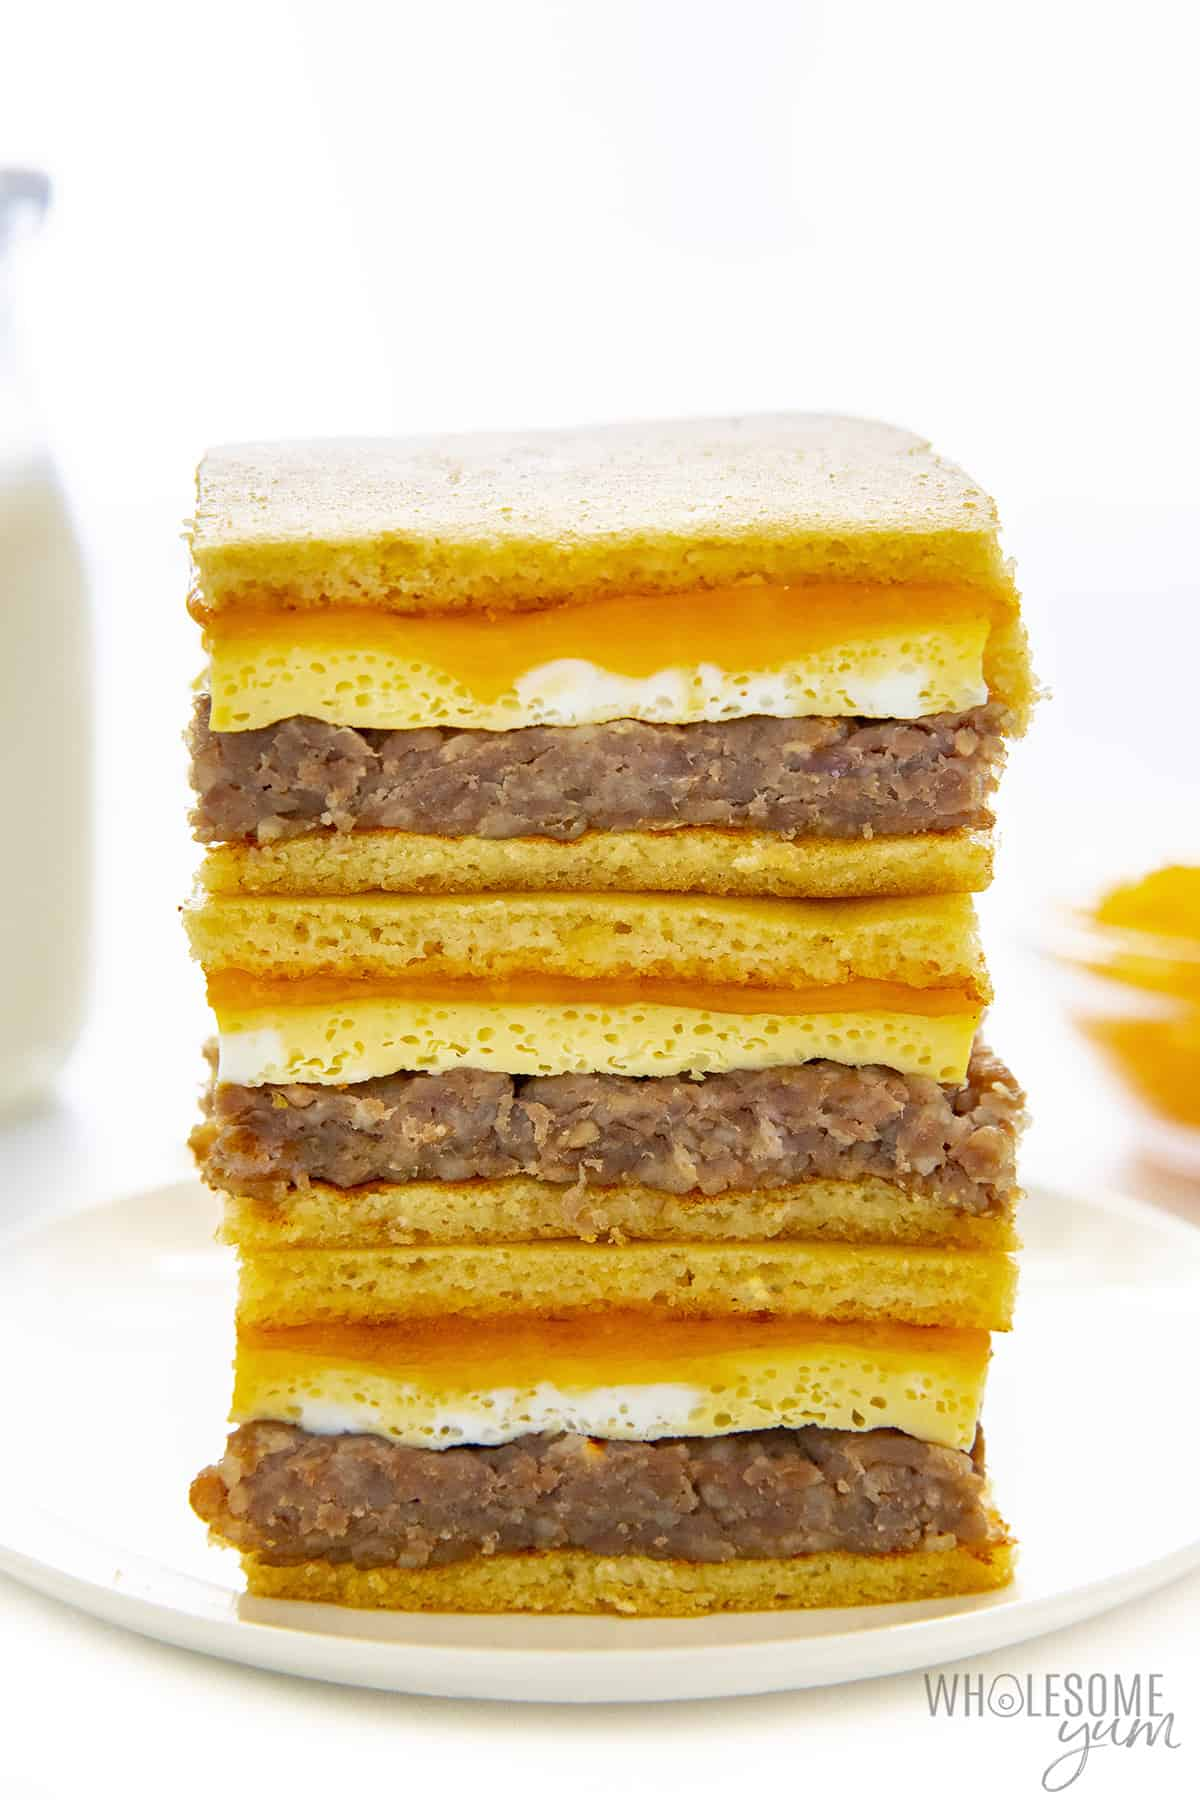 Tall stack of keto breakfast sandwiches